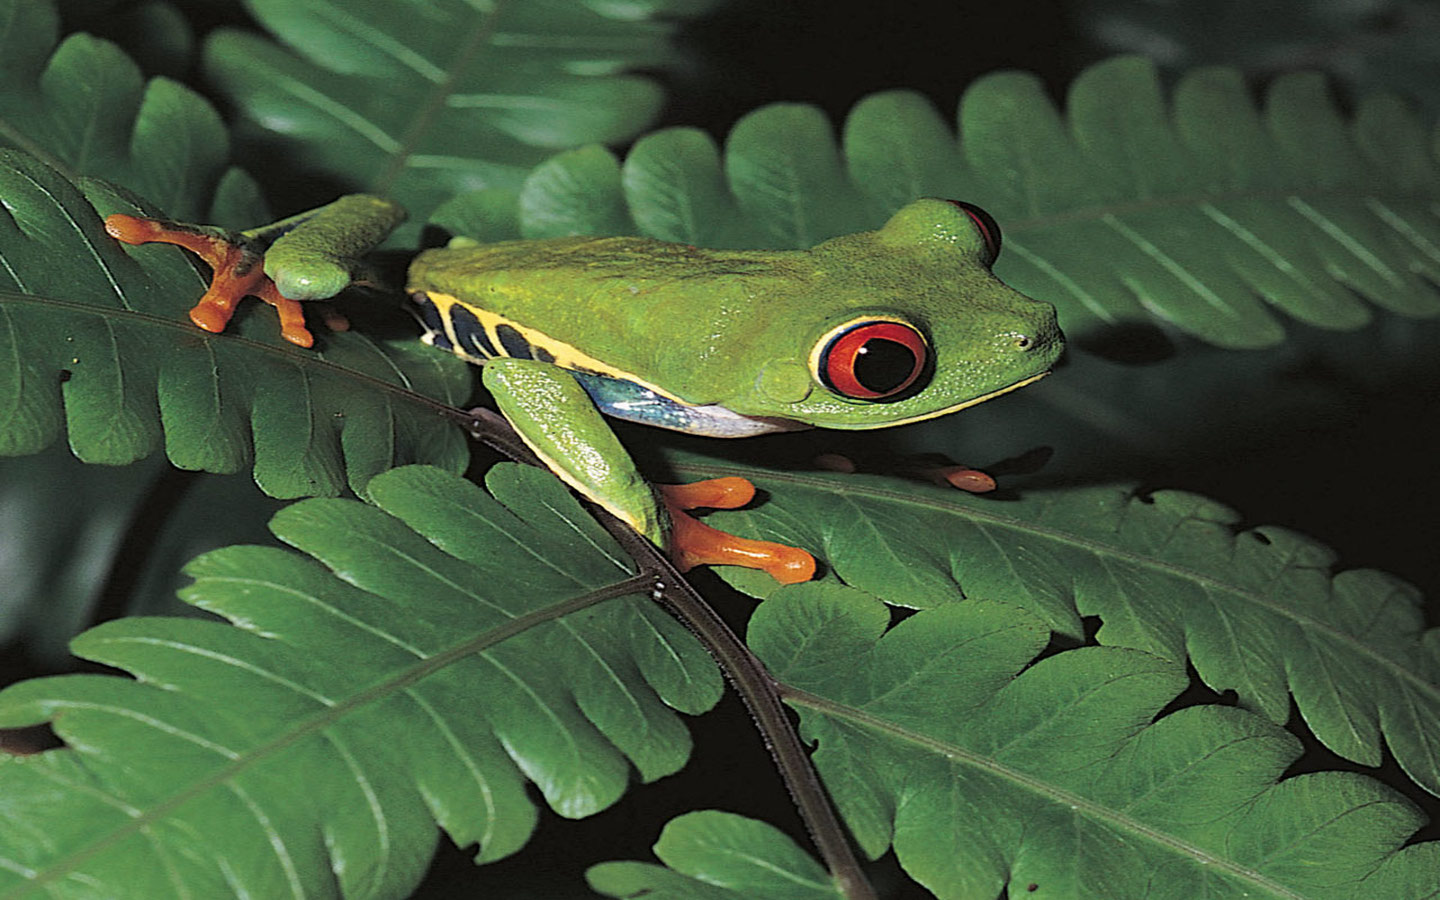 Green Frog